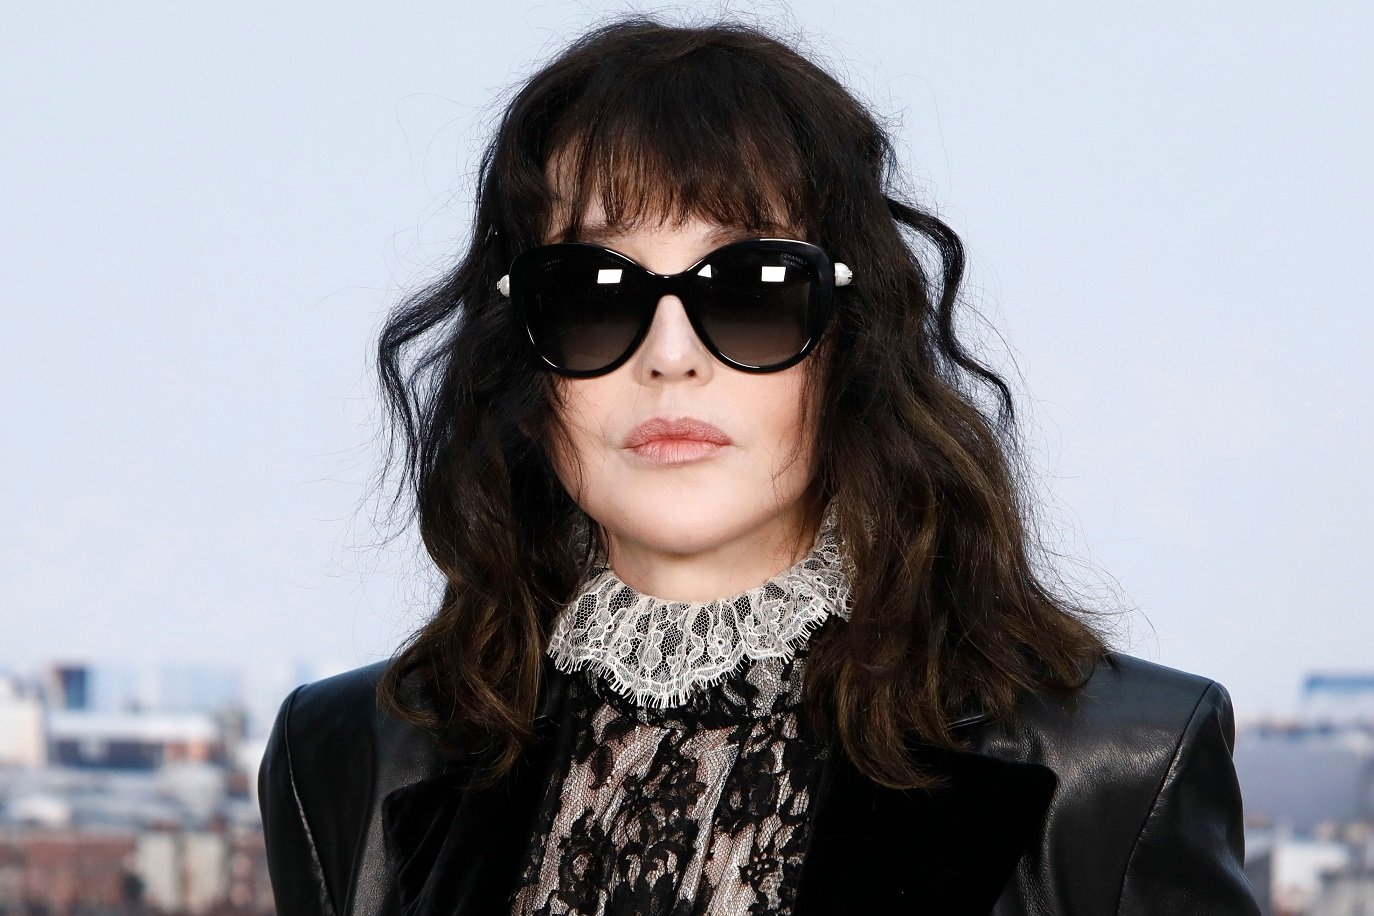 La comédienne Isabelle Adjani | Photo : Getty Images.